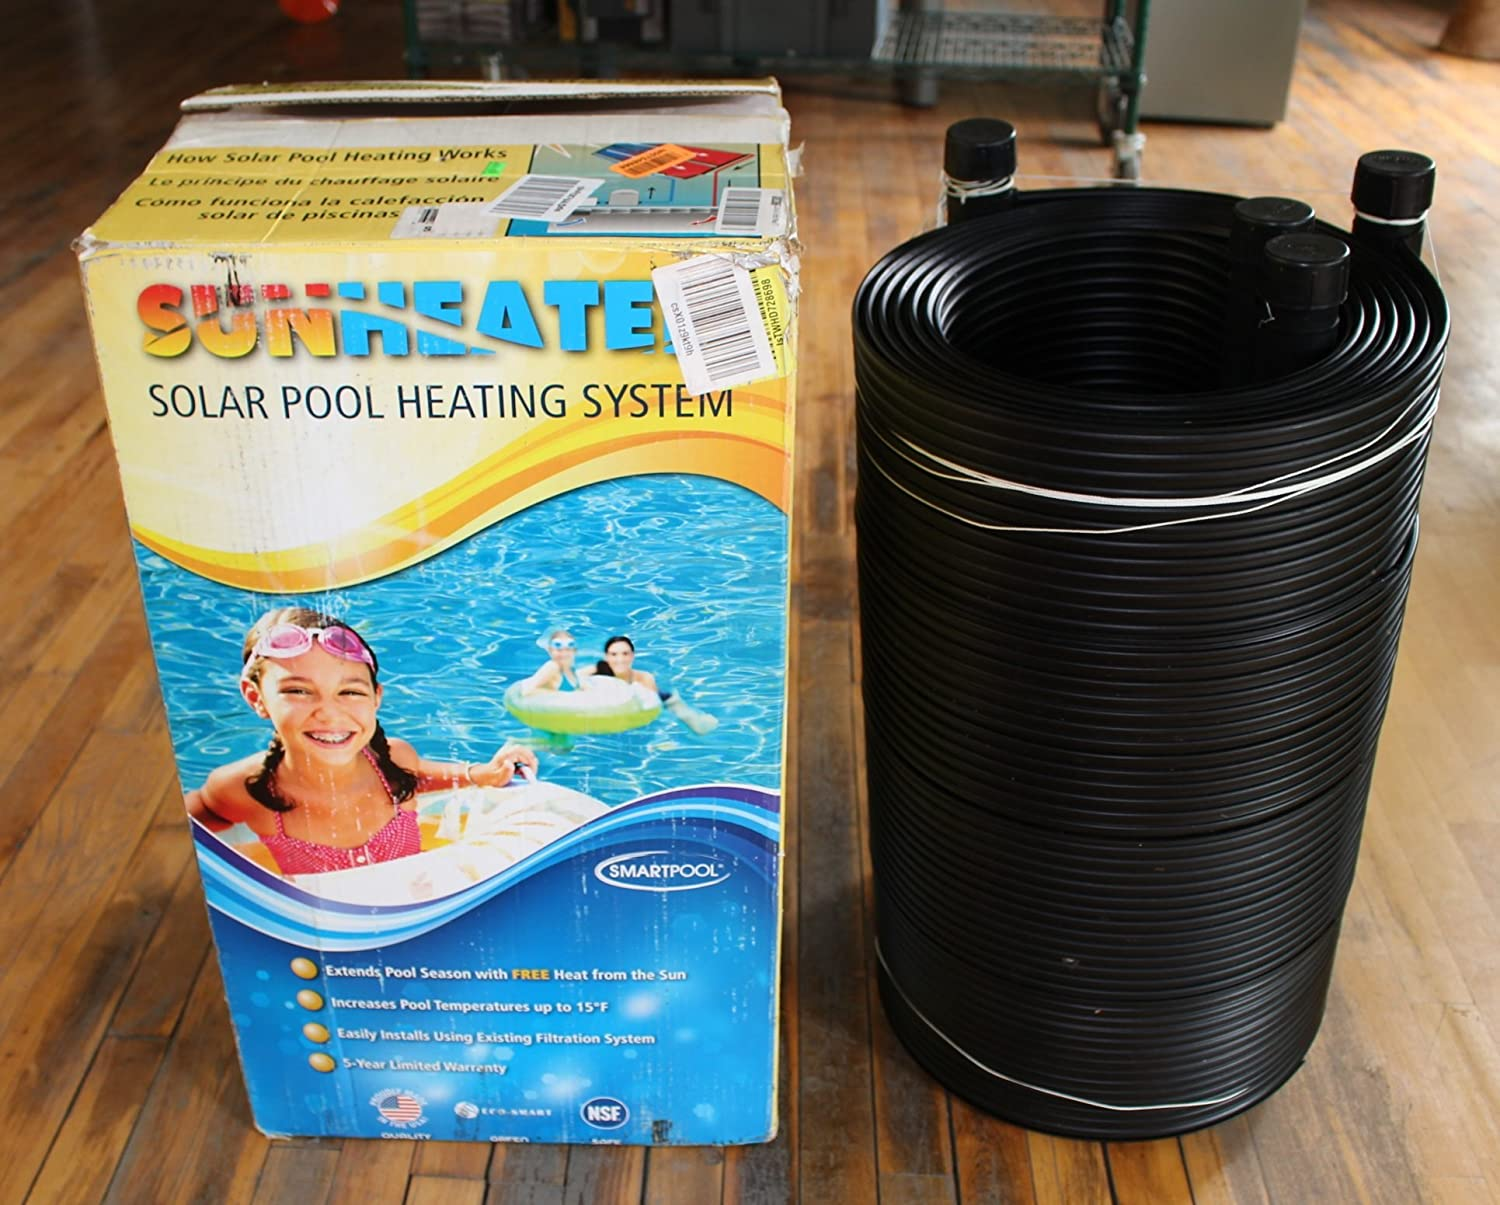 Smartpool WWS421PSunheater Solar Pool Heater for Above Ground Pools